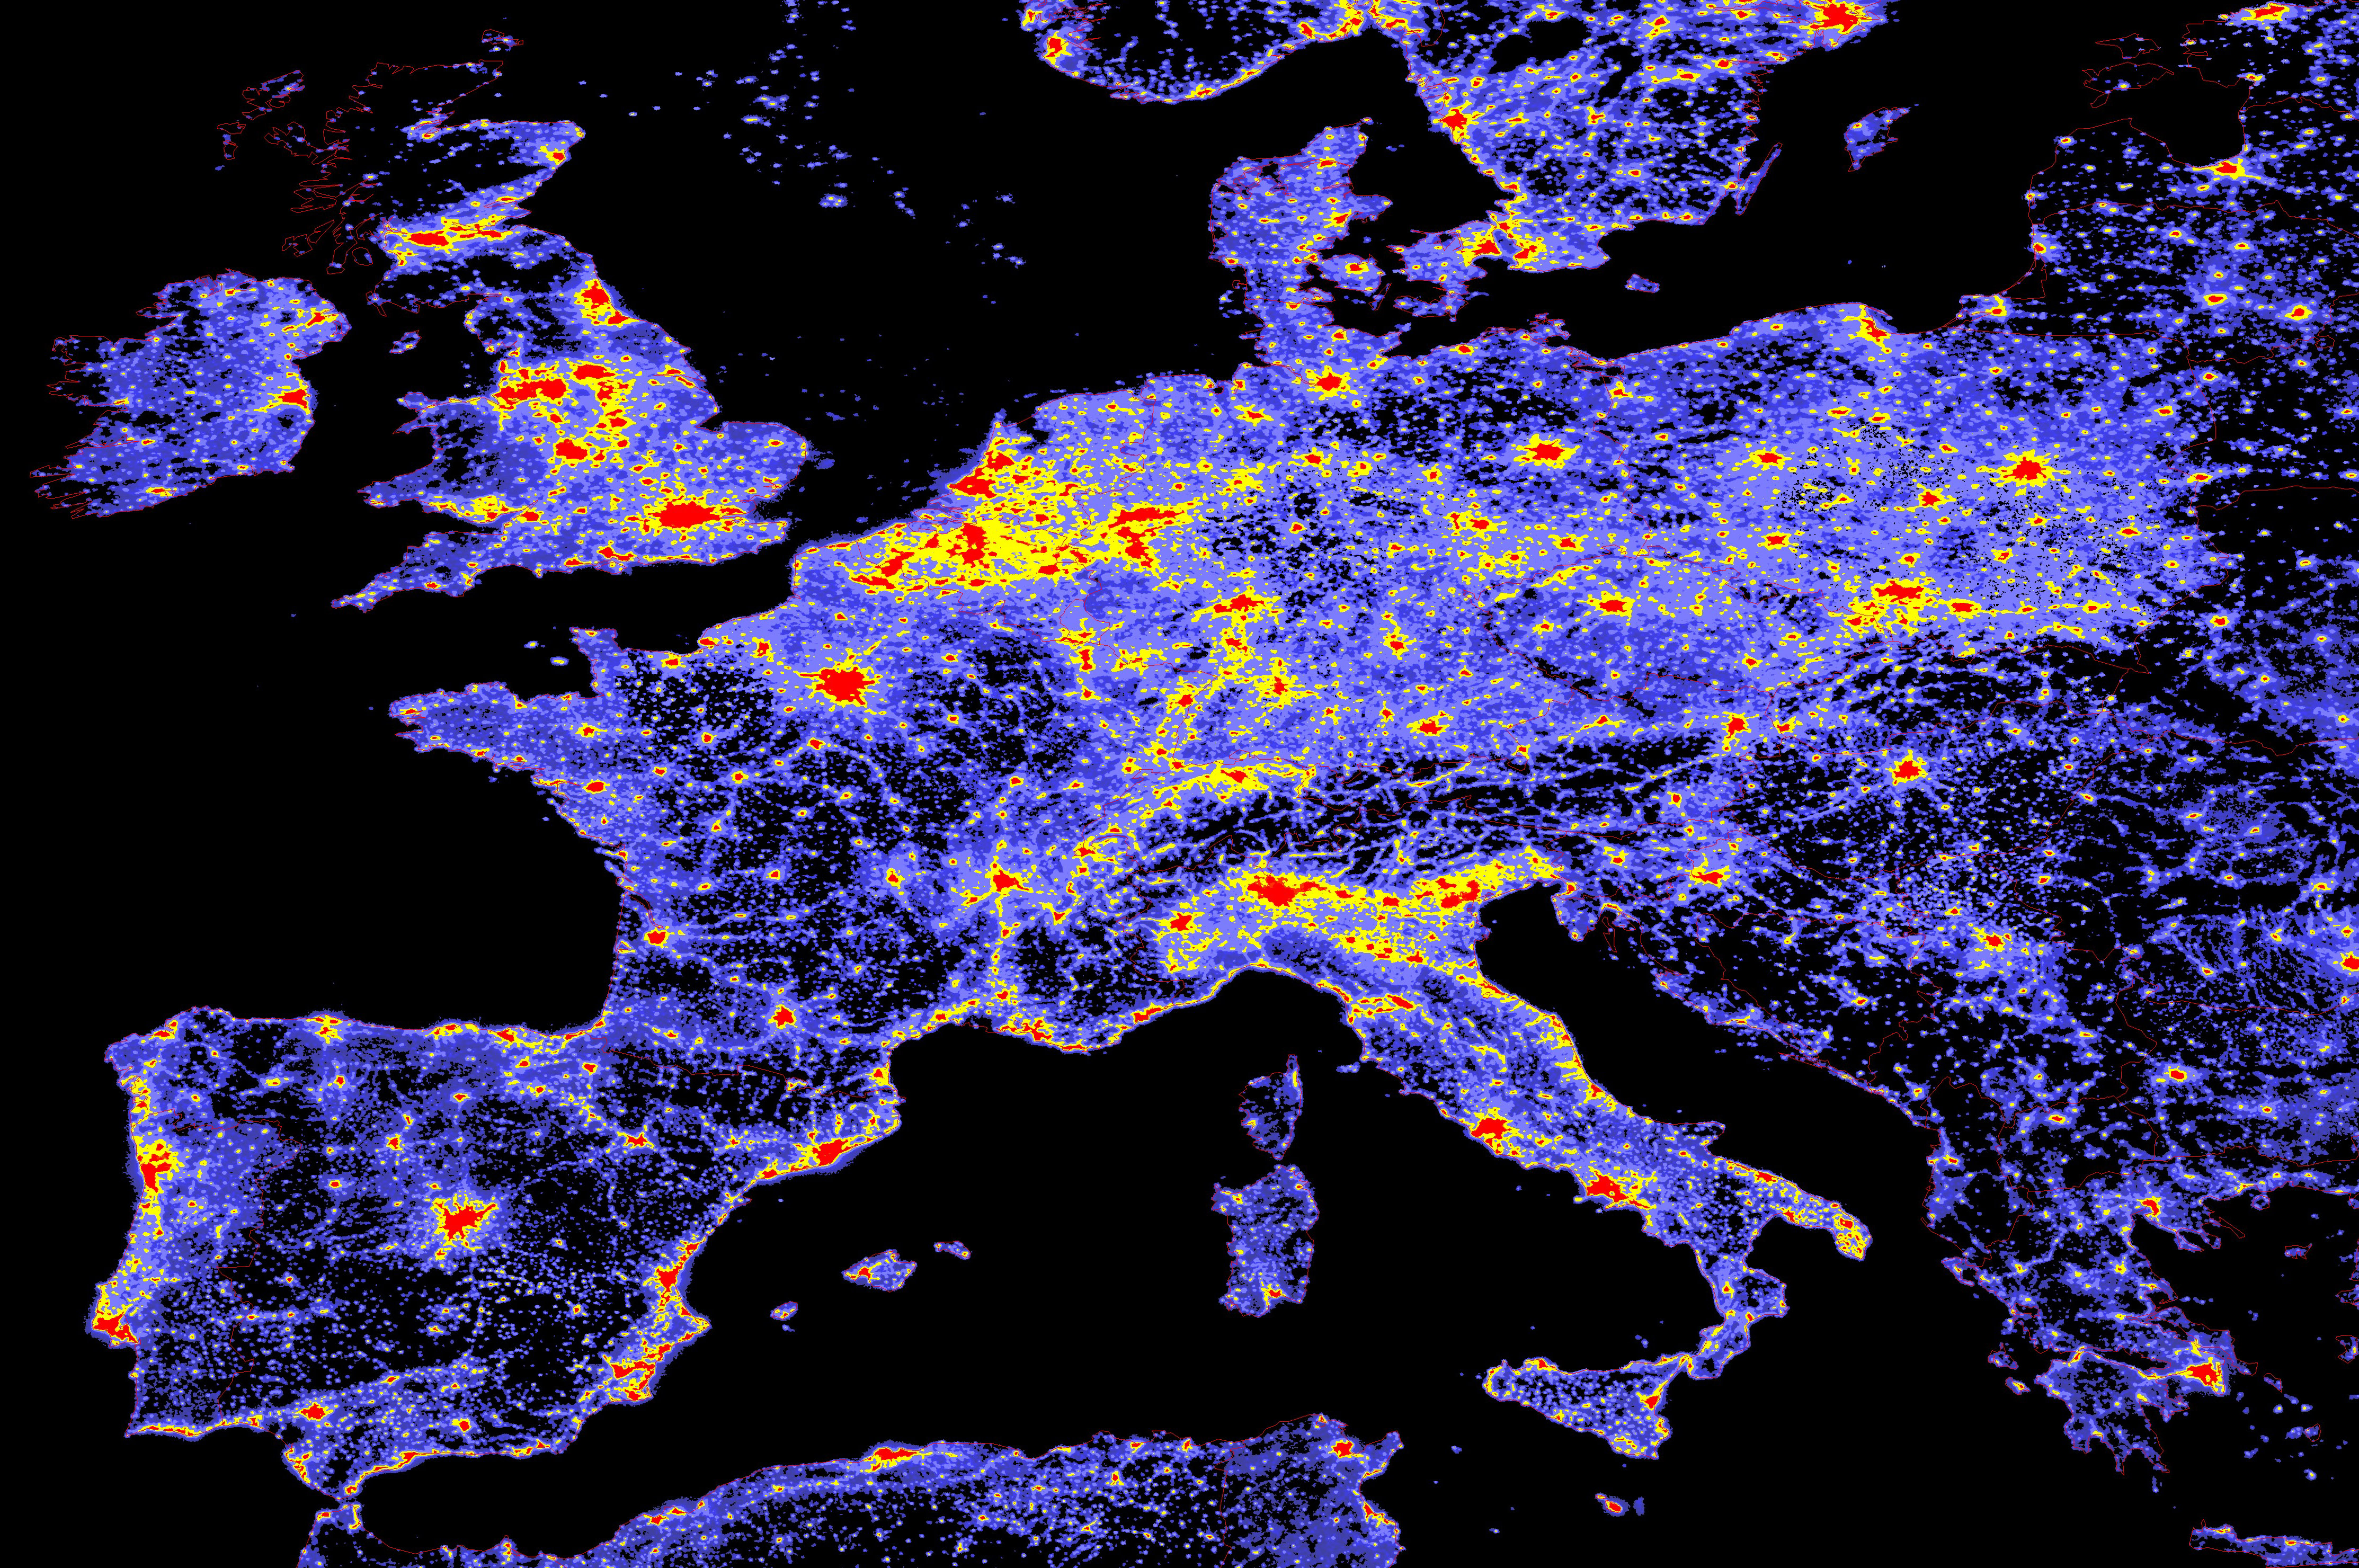 Inquinamento luminoso in Europa (NASA Earth Observatory/NOAA NGDC)